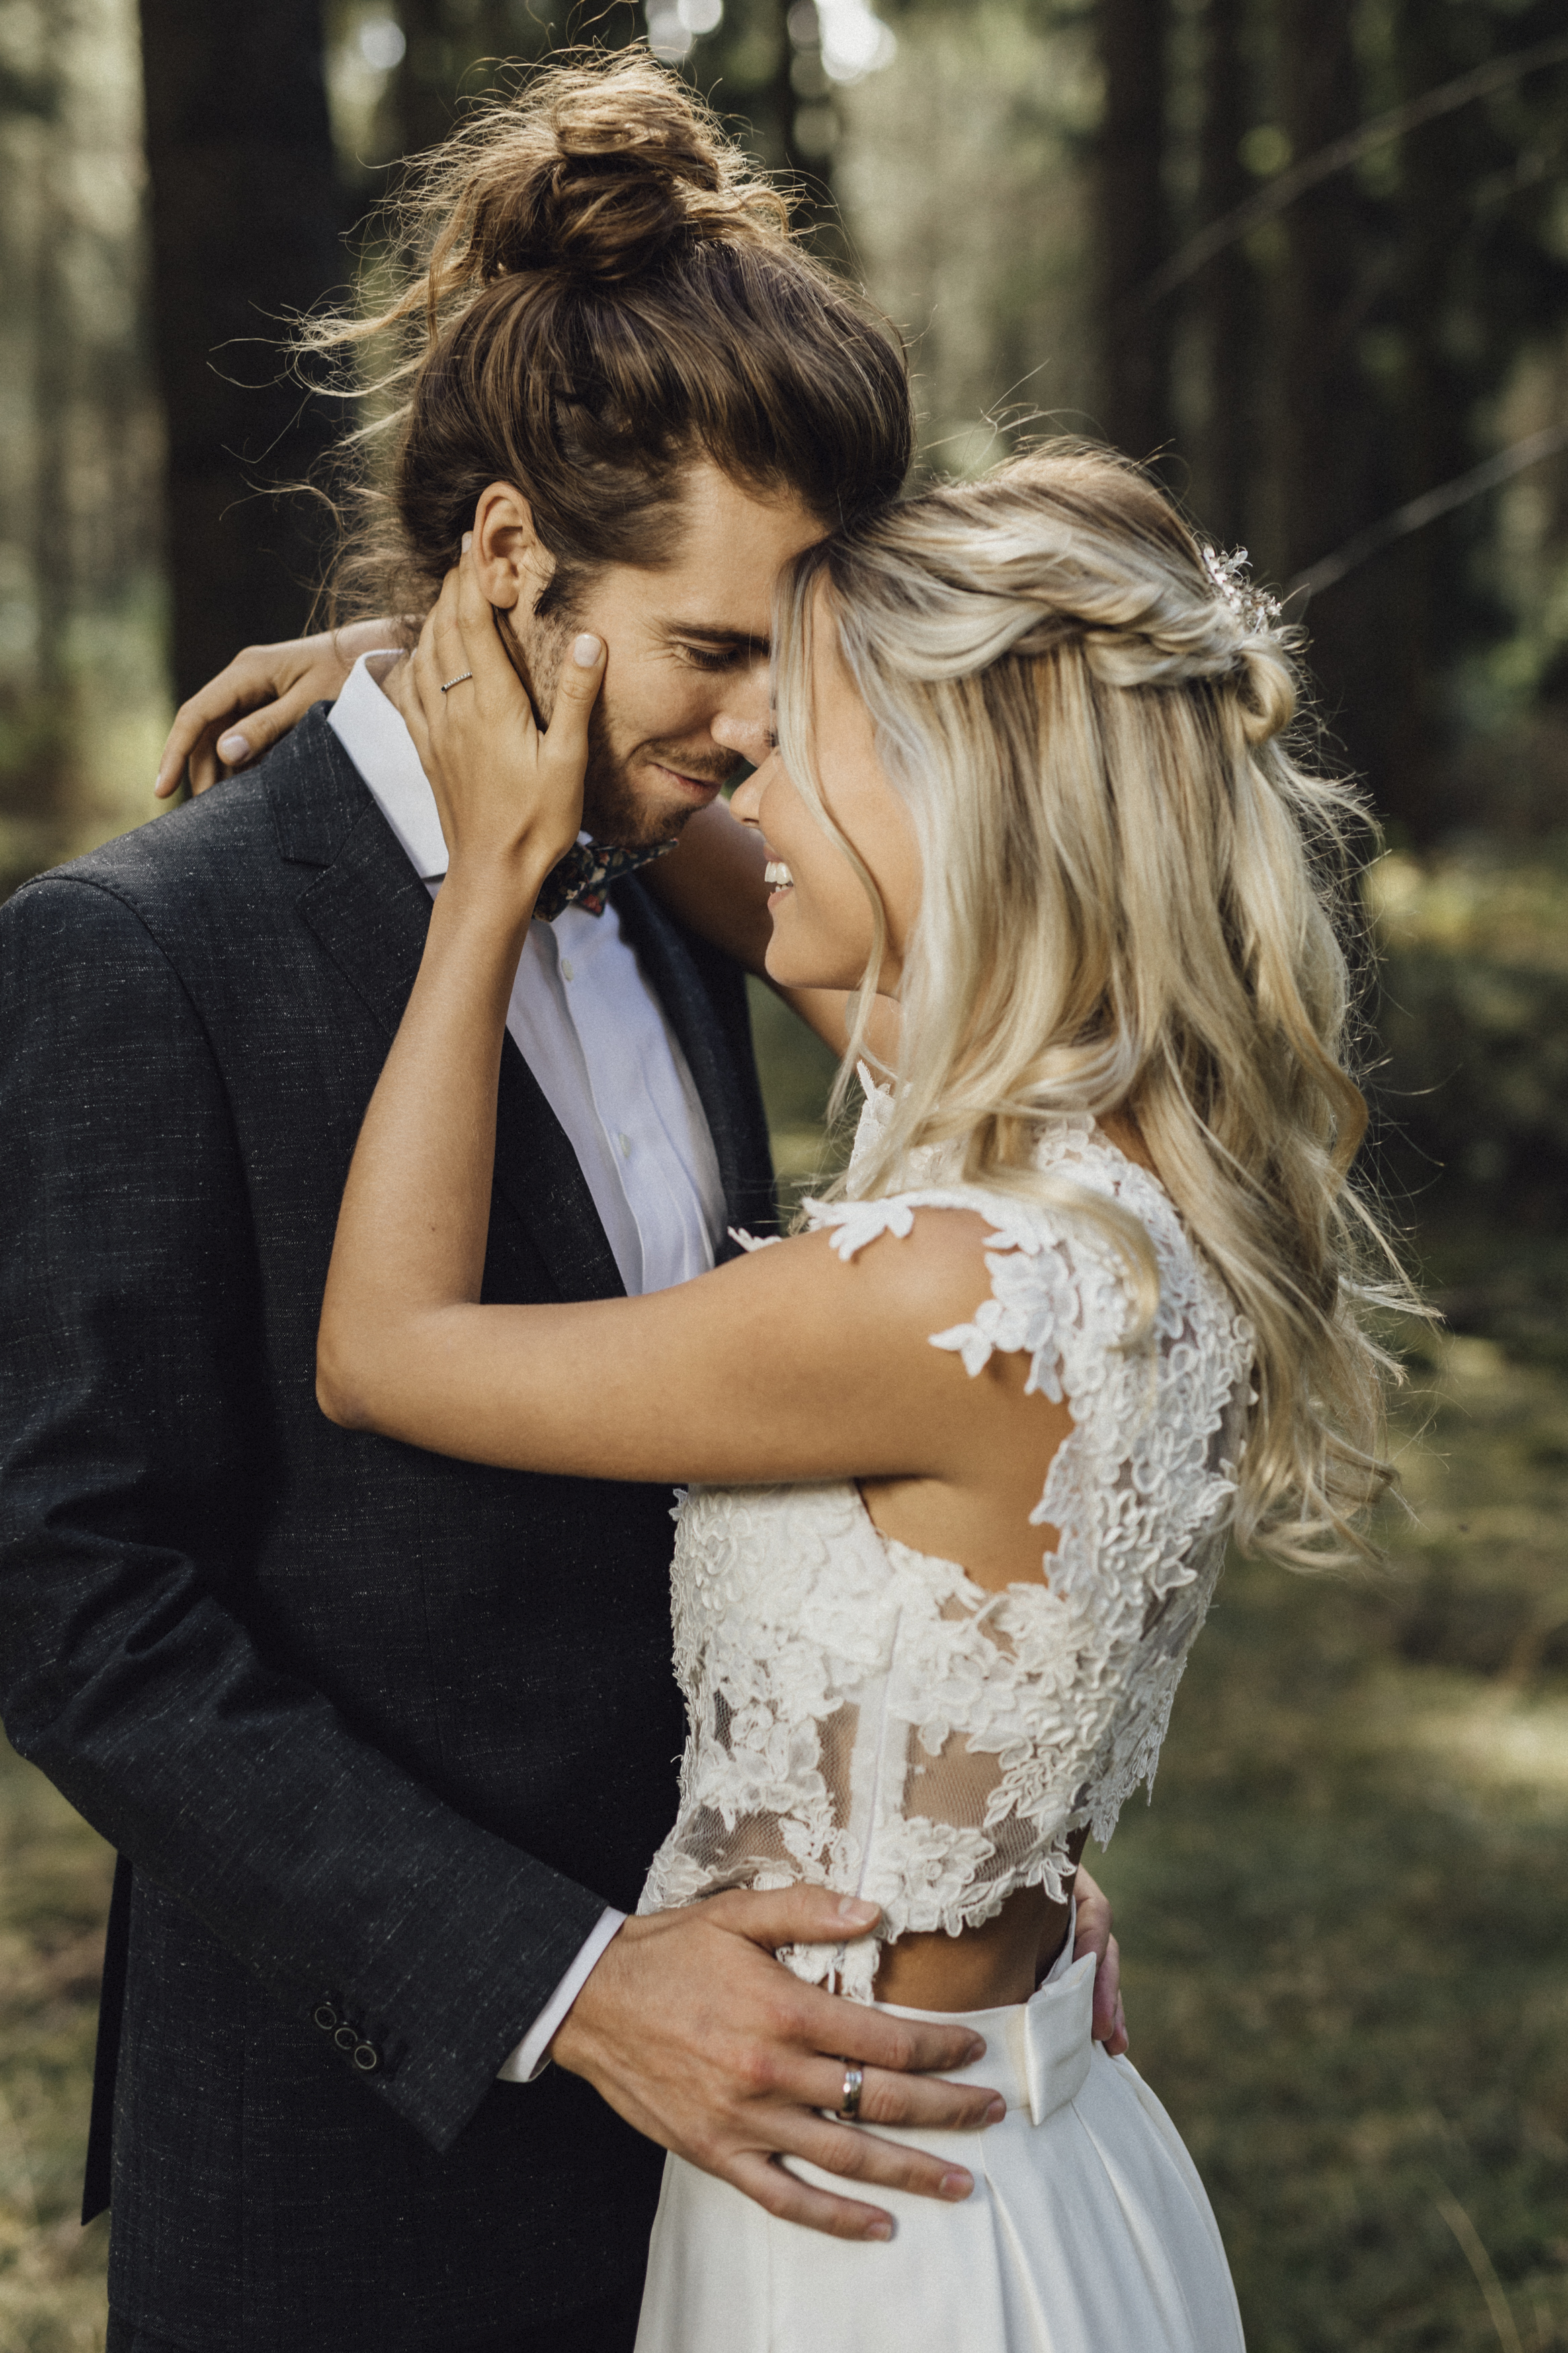 Marie and Jake - photographer Onelight Photograpy